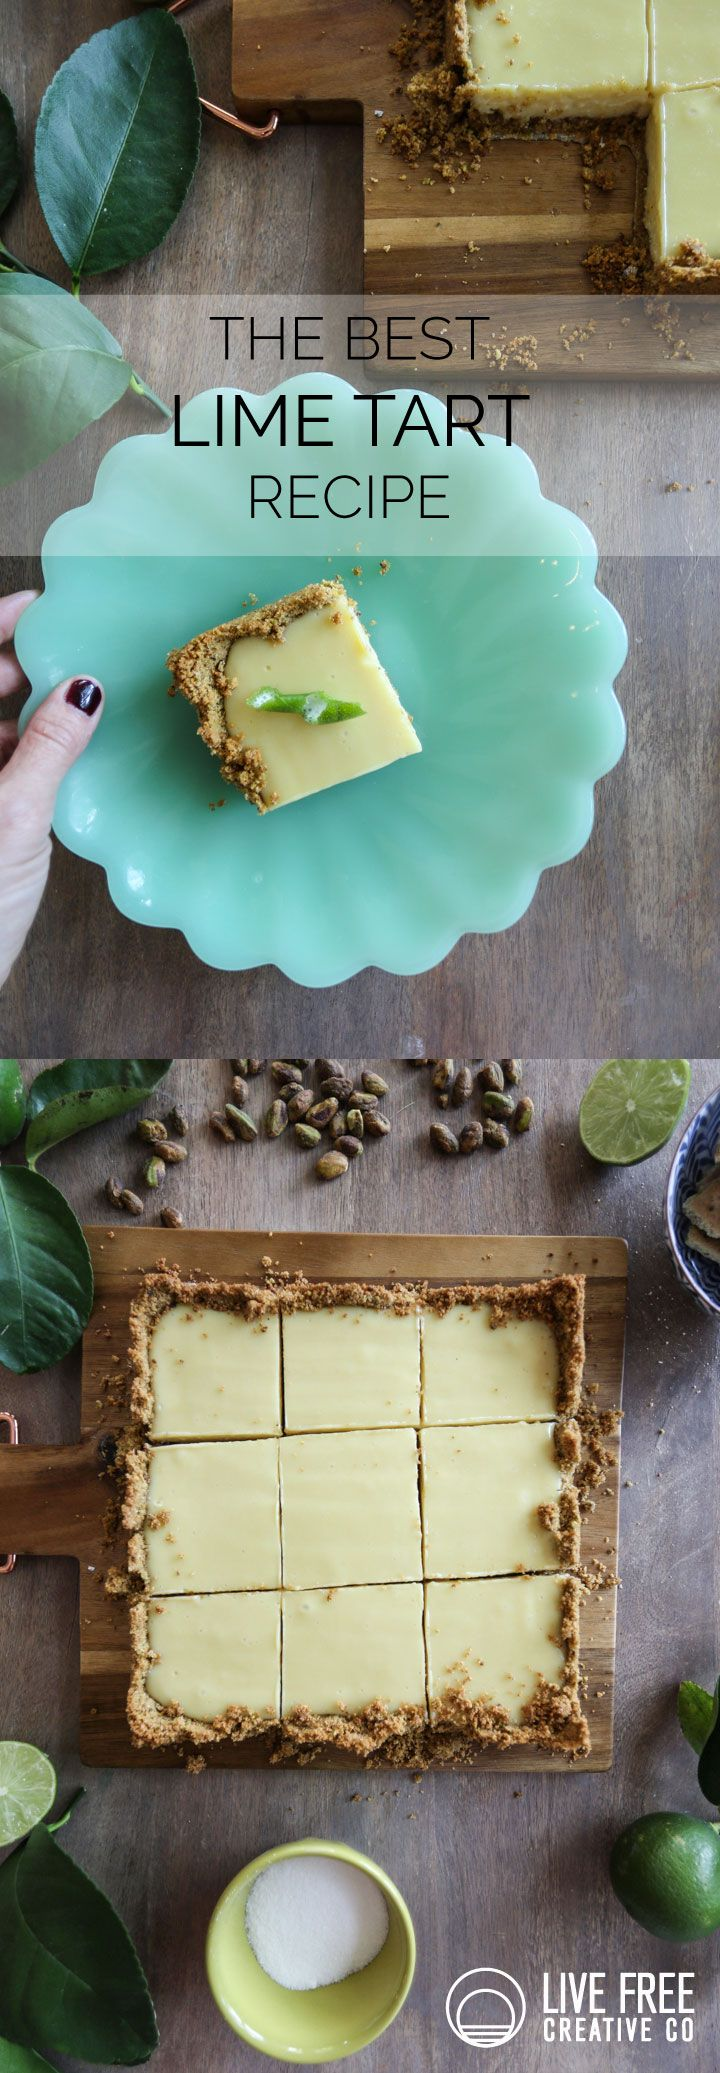 Walmart Grocery Pickup and the best Lime Tart Recipe - Live Free Creative Co